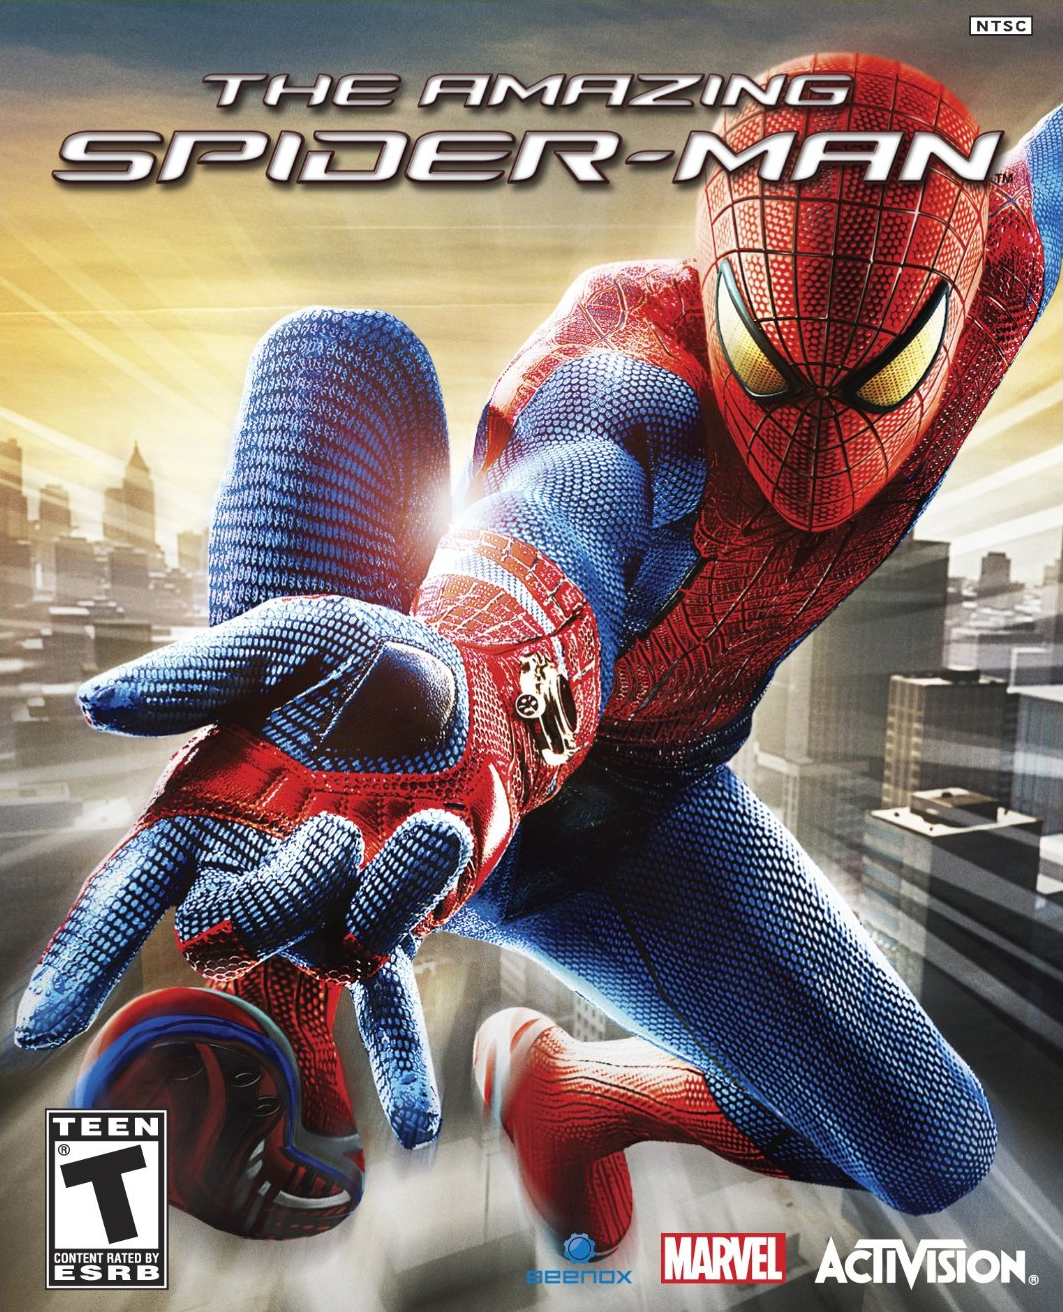 The Amazing Spider-Man (video game)   Marvel Movies ...